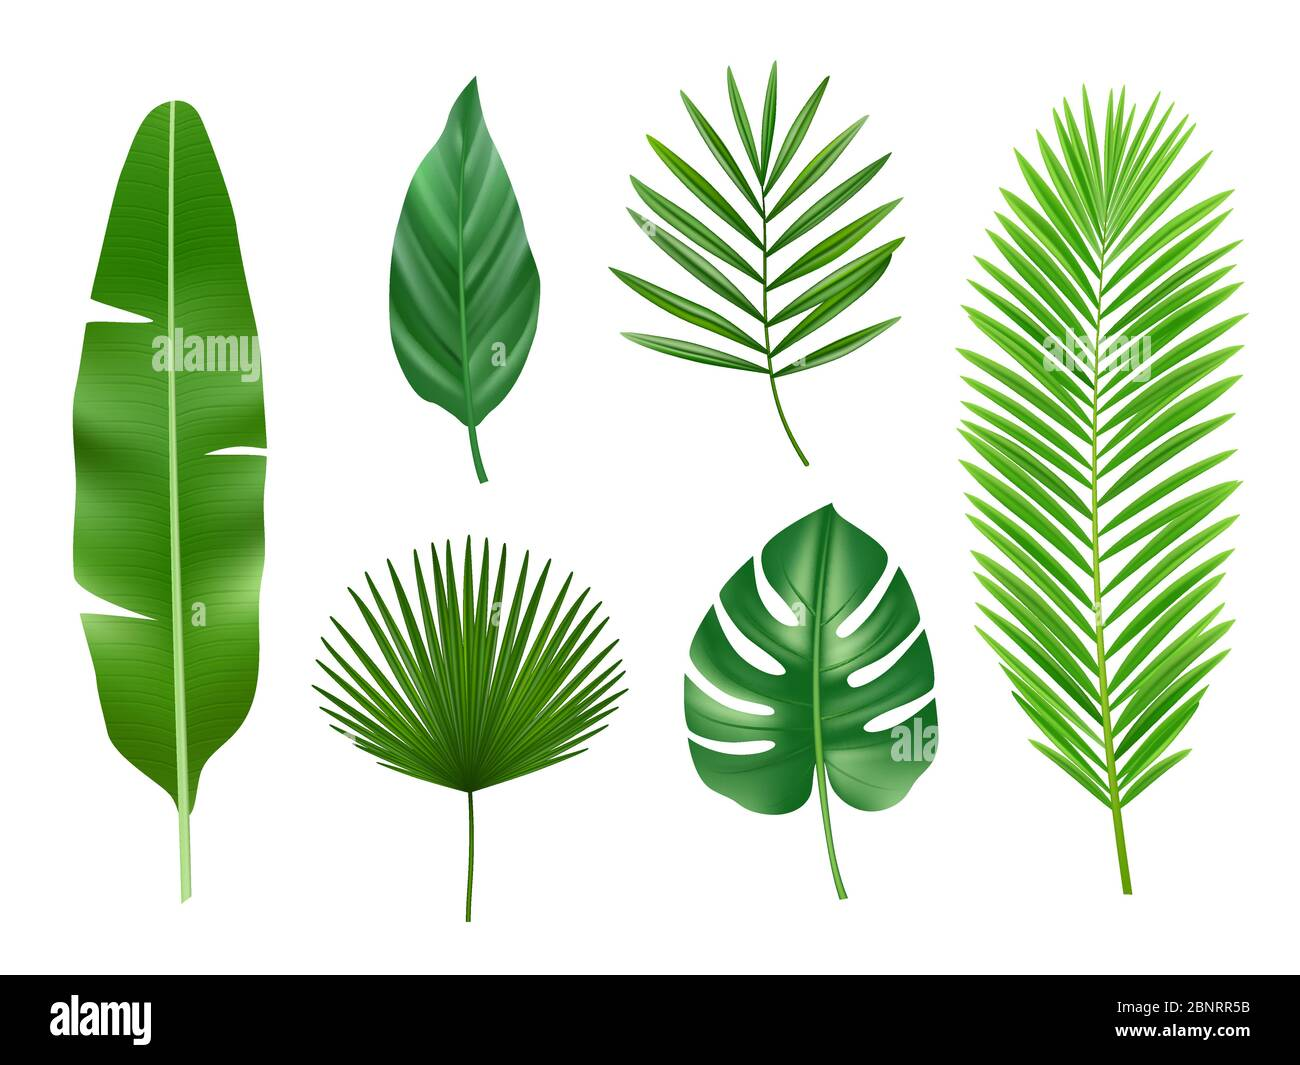 Tropical Plants Exotic Eco Nature Green Leaves Vector Realistic Collection Isolated Stock Vector Image Art Alamy Buy tropical exotic trees and get the best deals at the lowest prices on ebay! https www alamy com tropical plants exotic eco nature green leaves vector realistic collection isolated image357638215 html